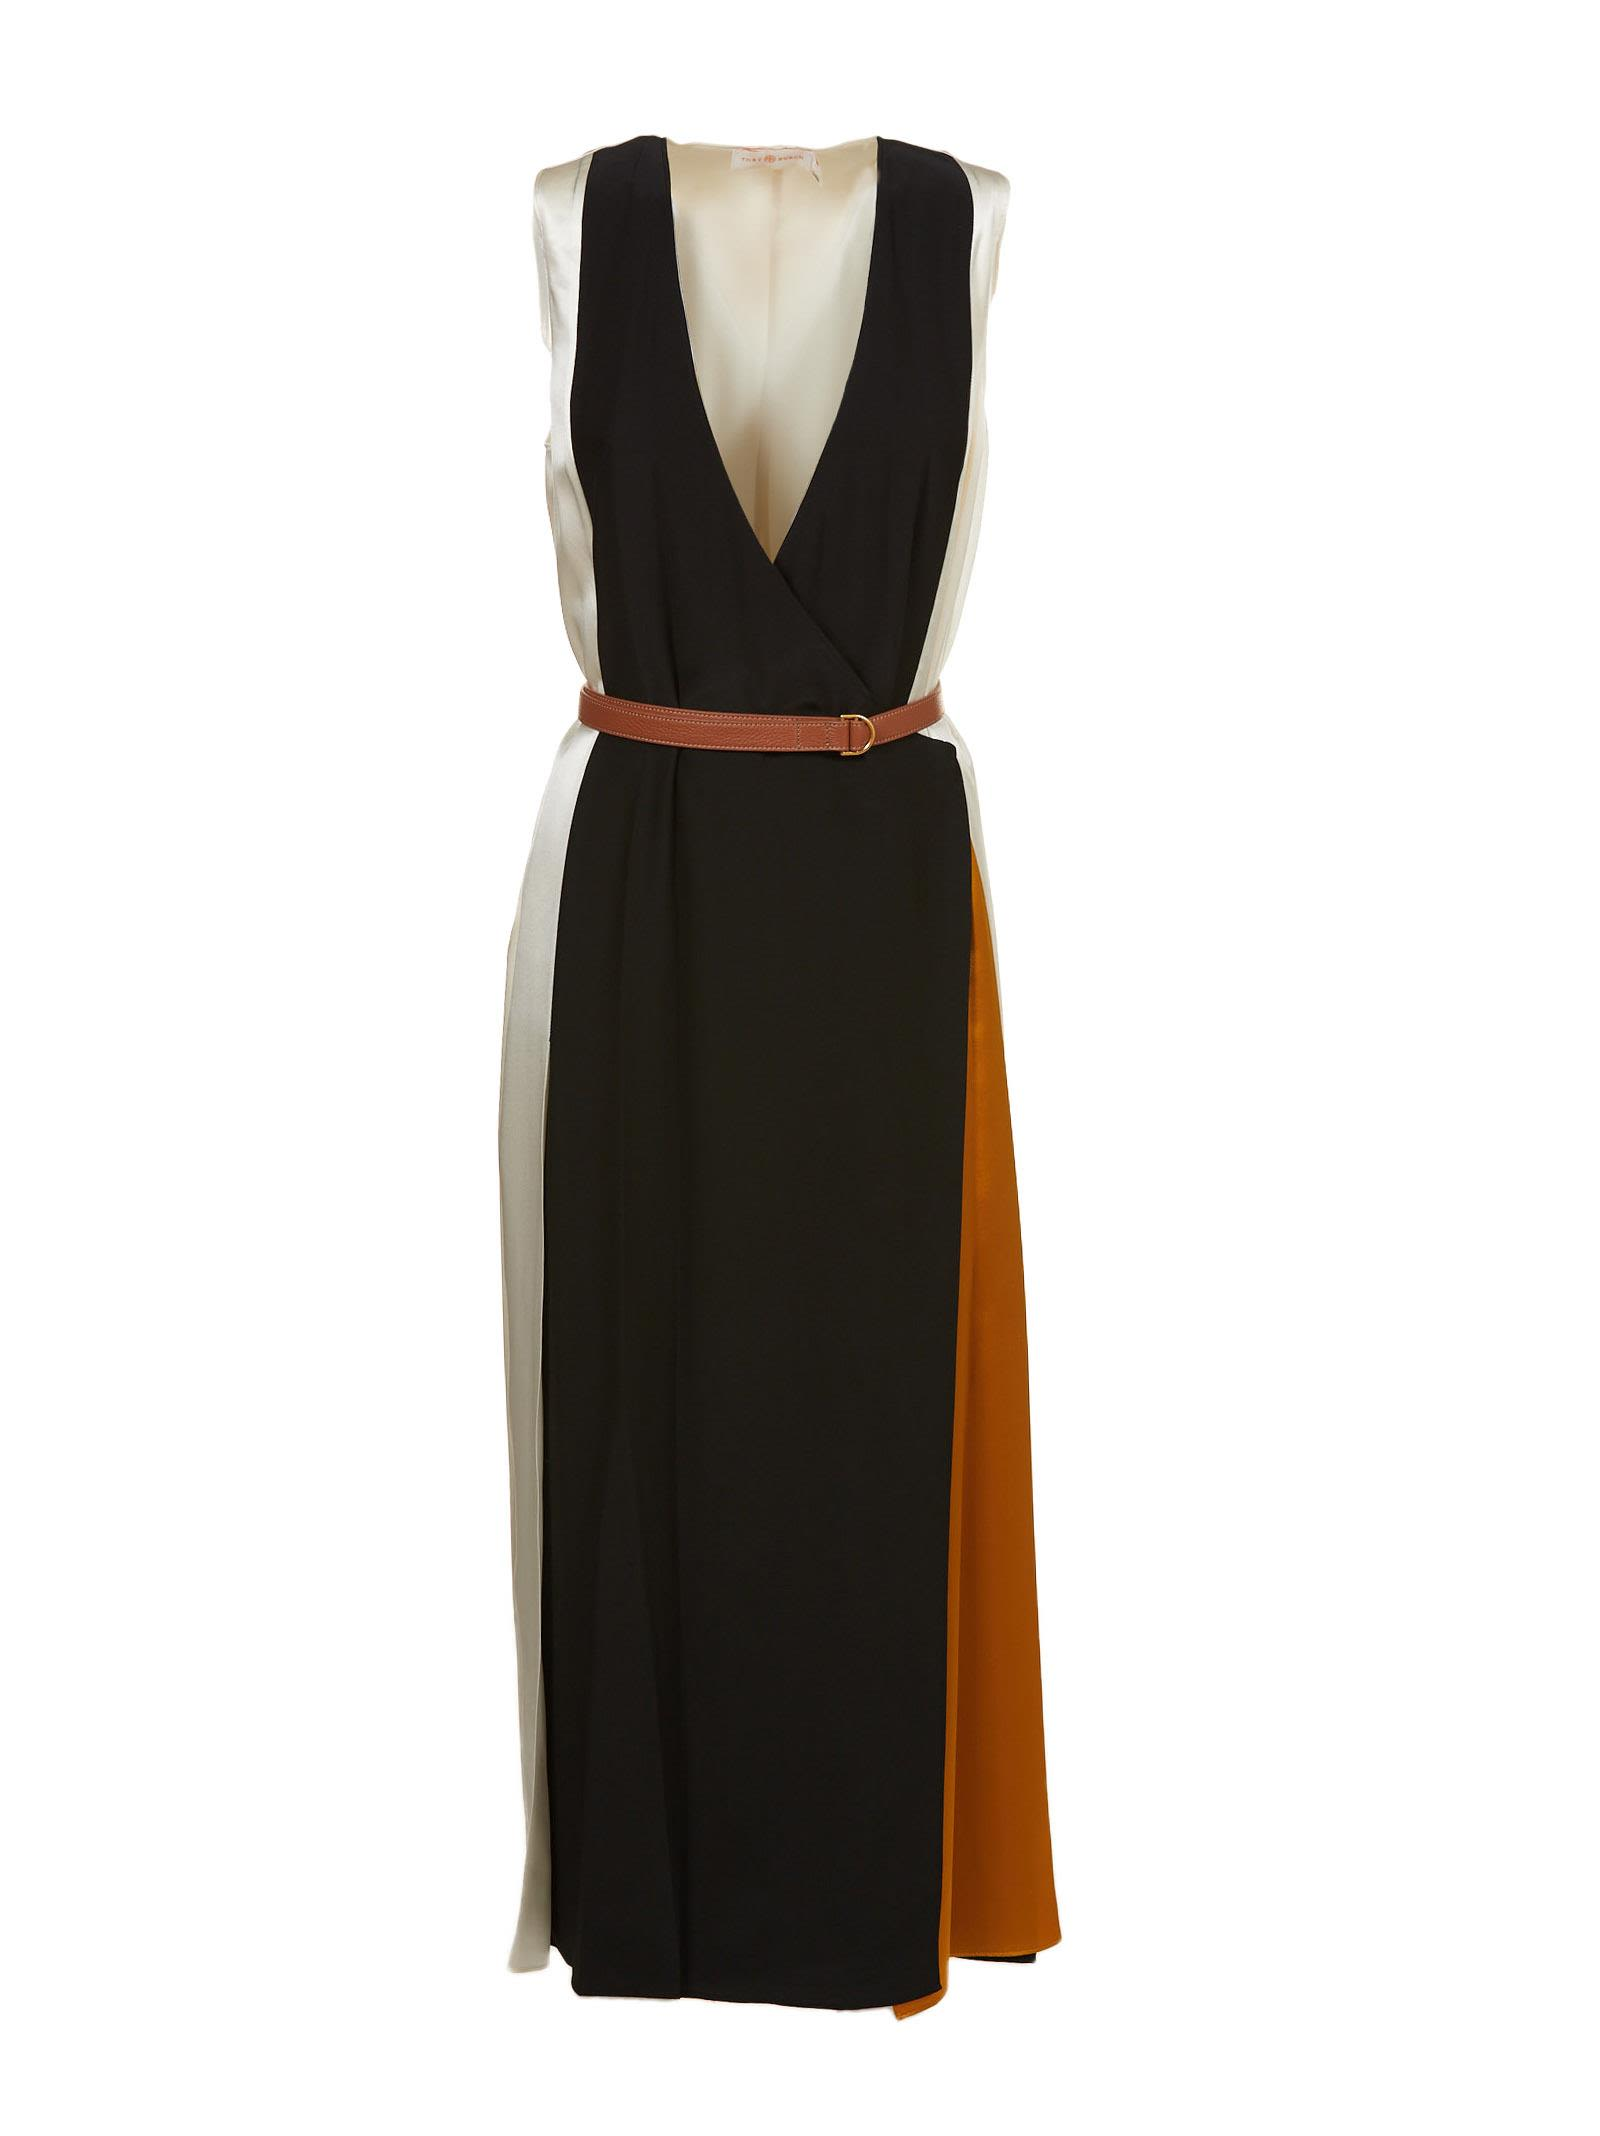 Clarice wrap dress - Black Tory Burch sSuyTzp2